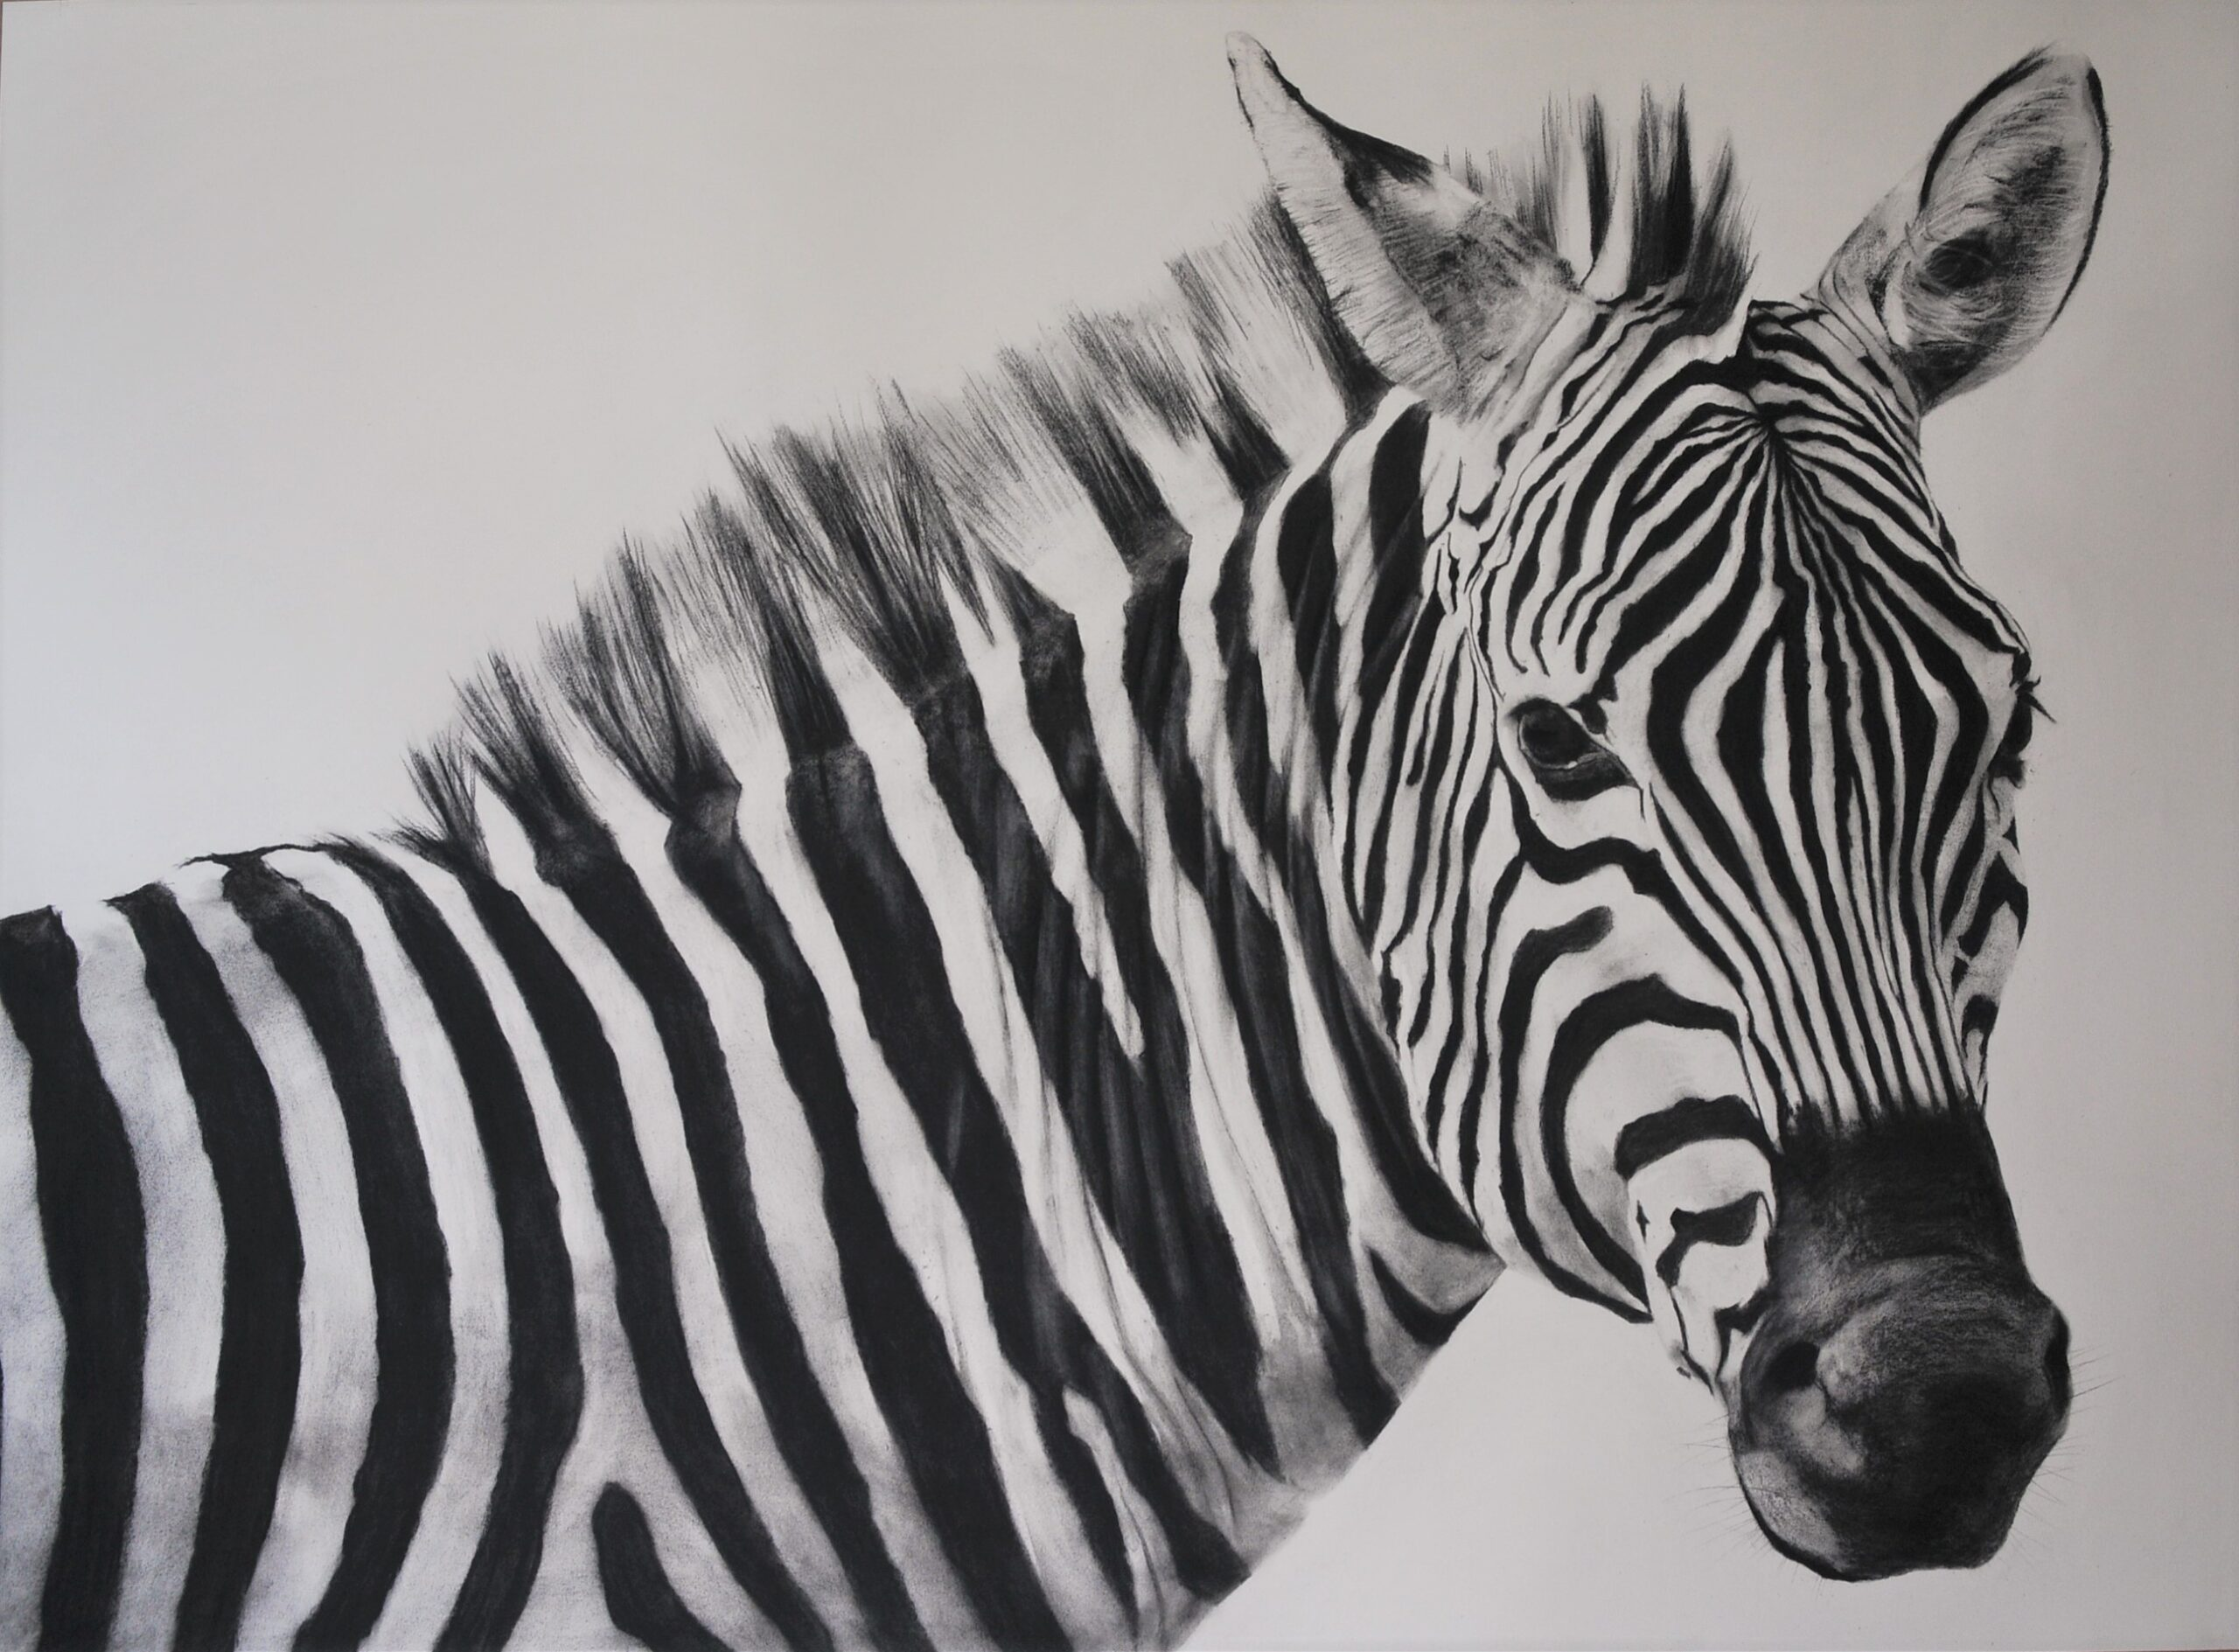 Charcoal drawing of a zebra